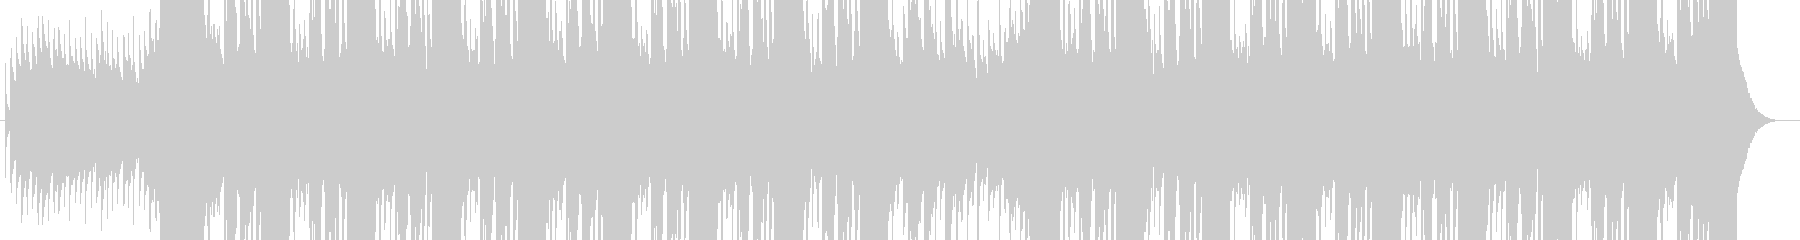 Cool ending picture oriented guitar rock's unreproduced waveform